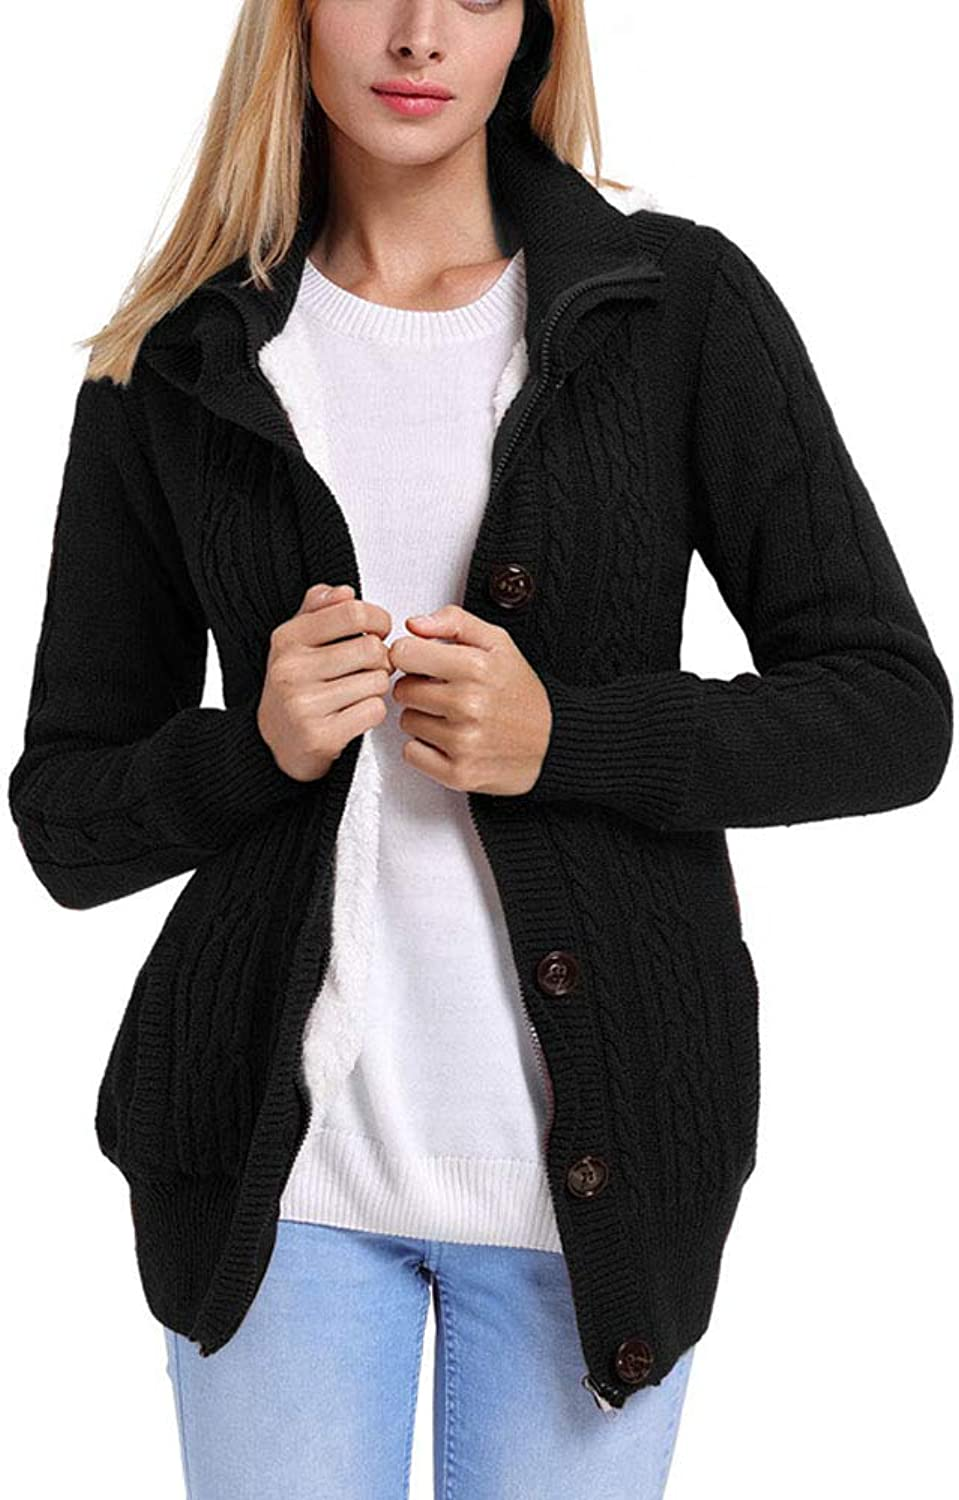 Nikauto Women Long Sleeve Buttonup Hooded Cardigans Casual Knit Cardigan Sweater for Autumn Winter